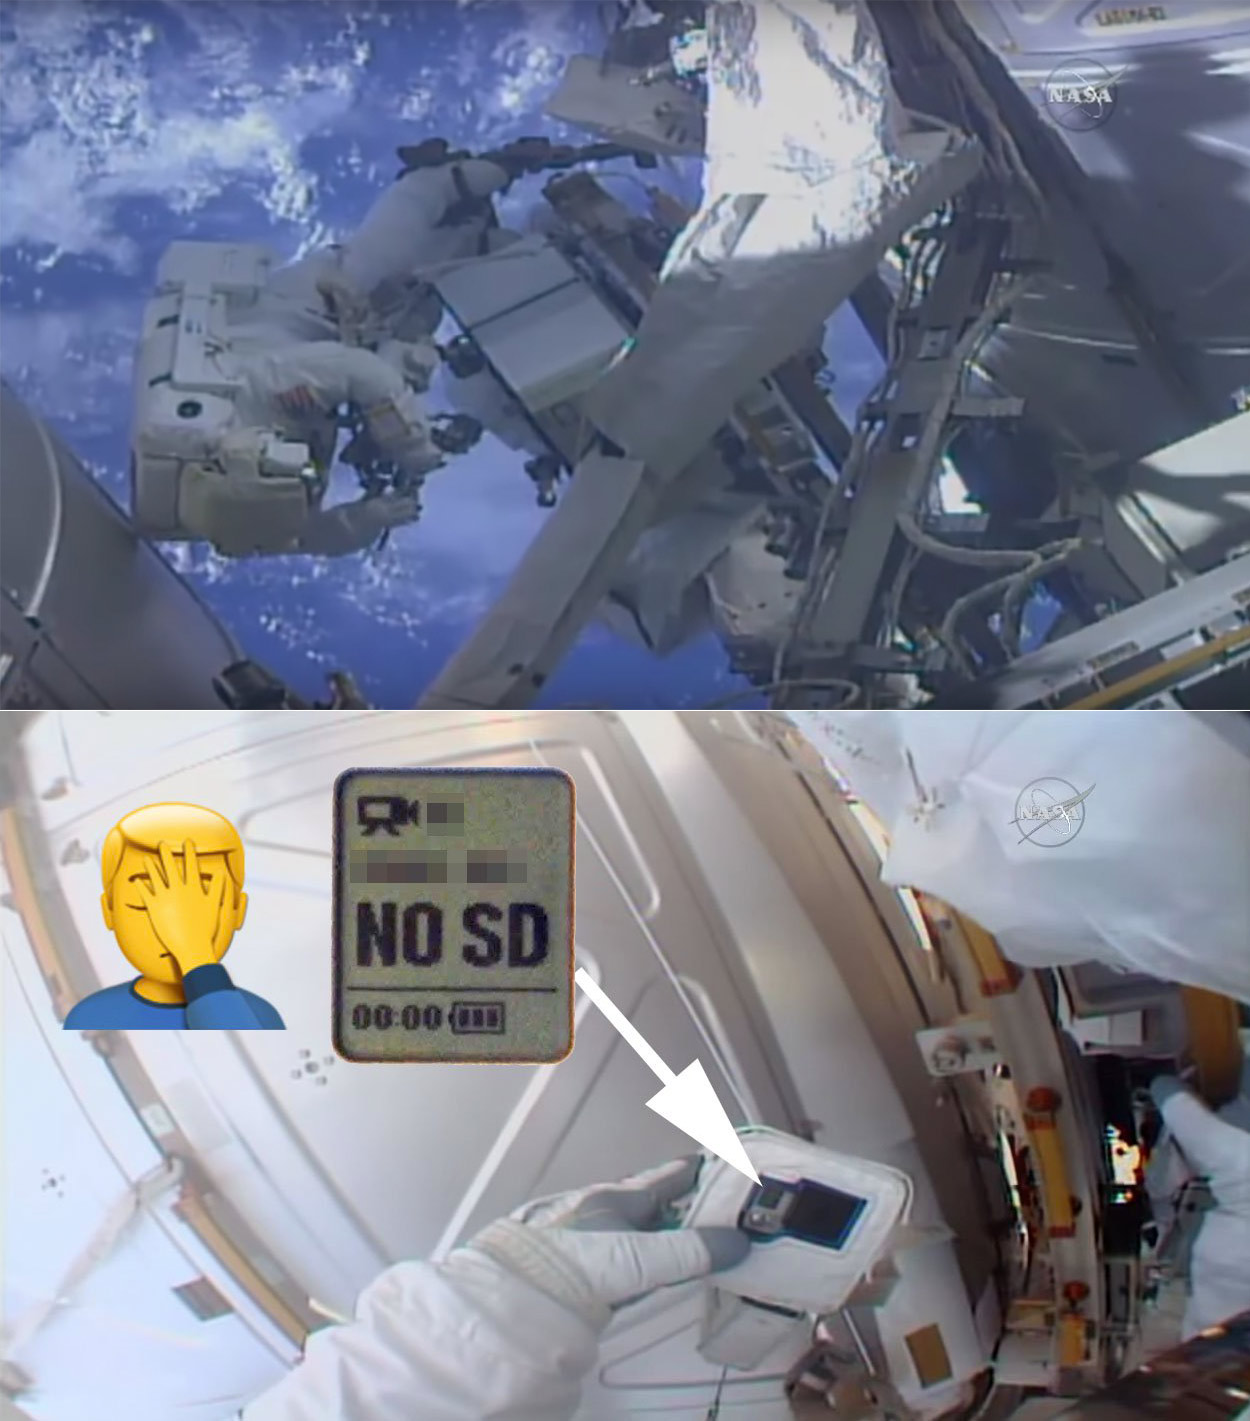 NASA Astronaut SD Card